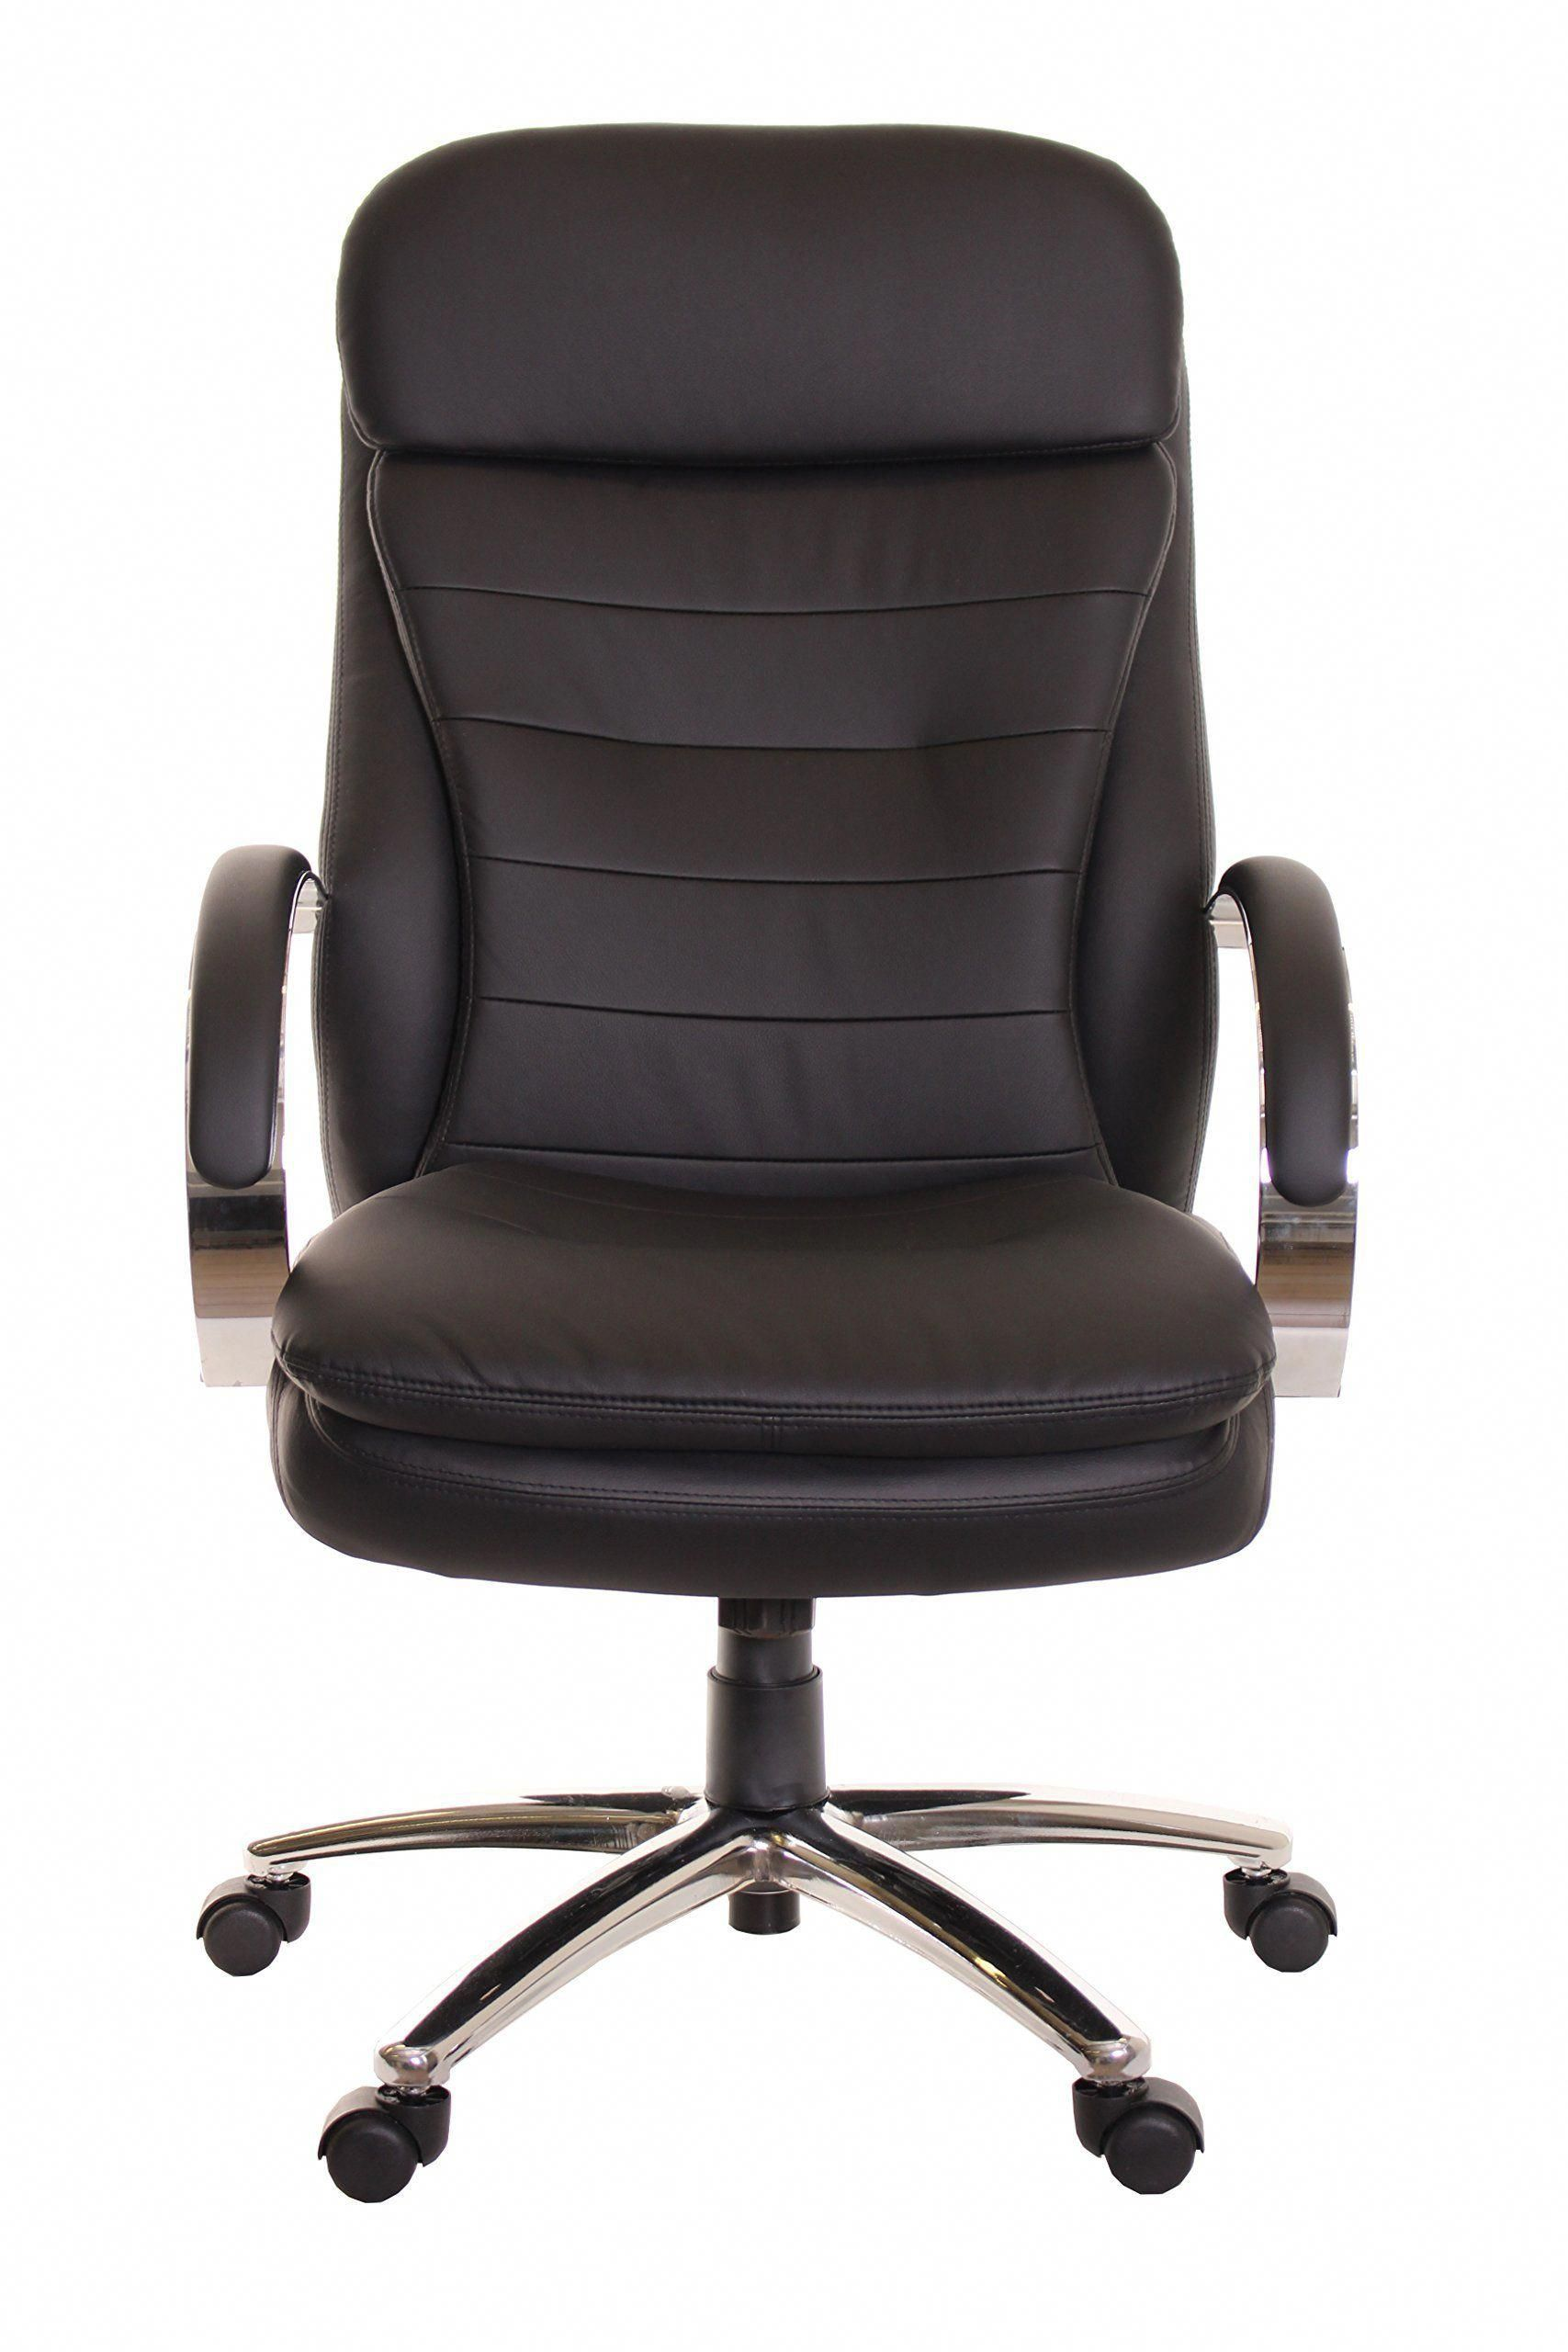 timeoffice ergonomic high back office chair with chrome base black rh pinterest com